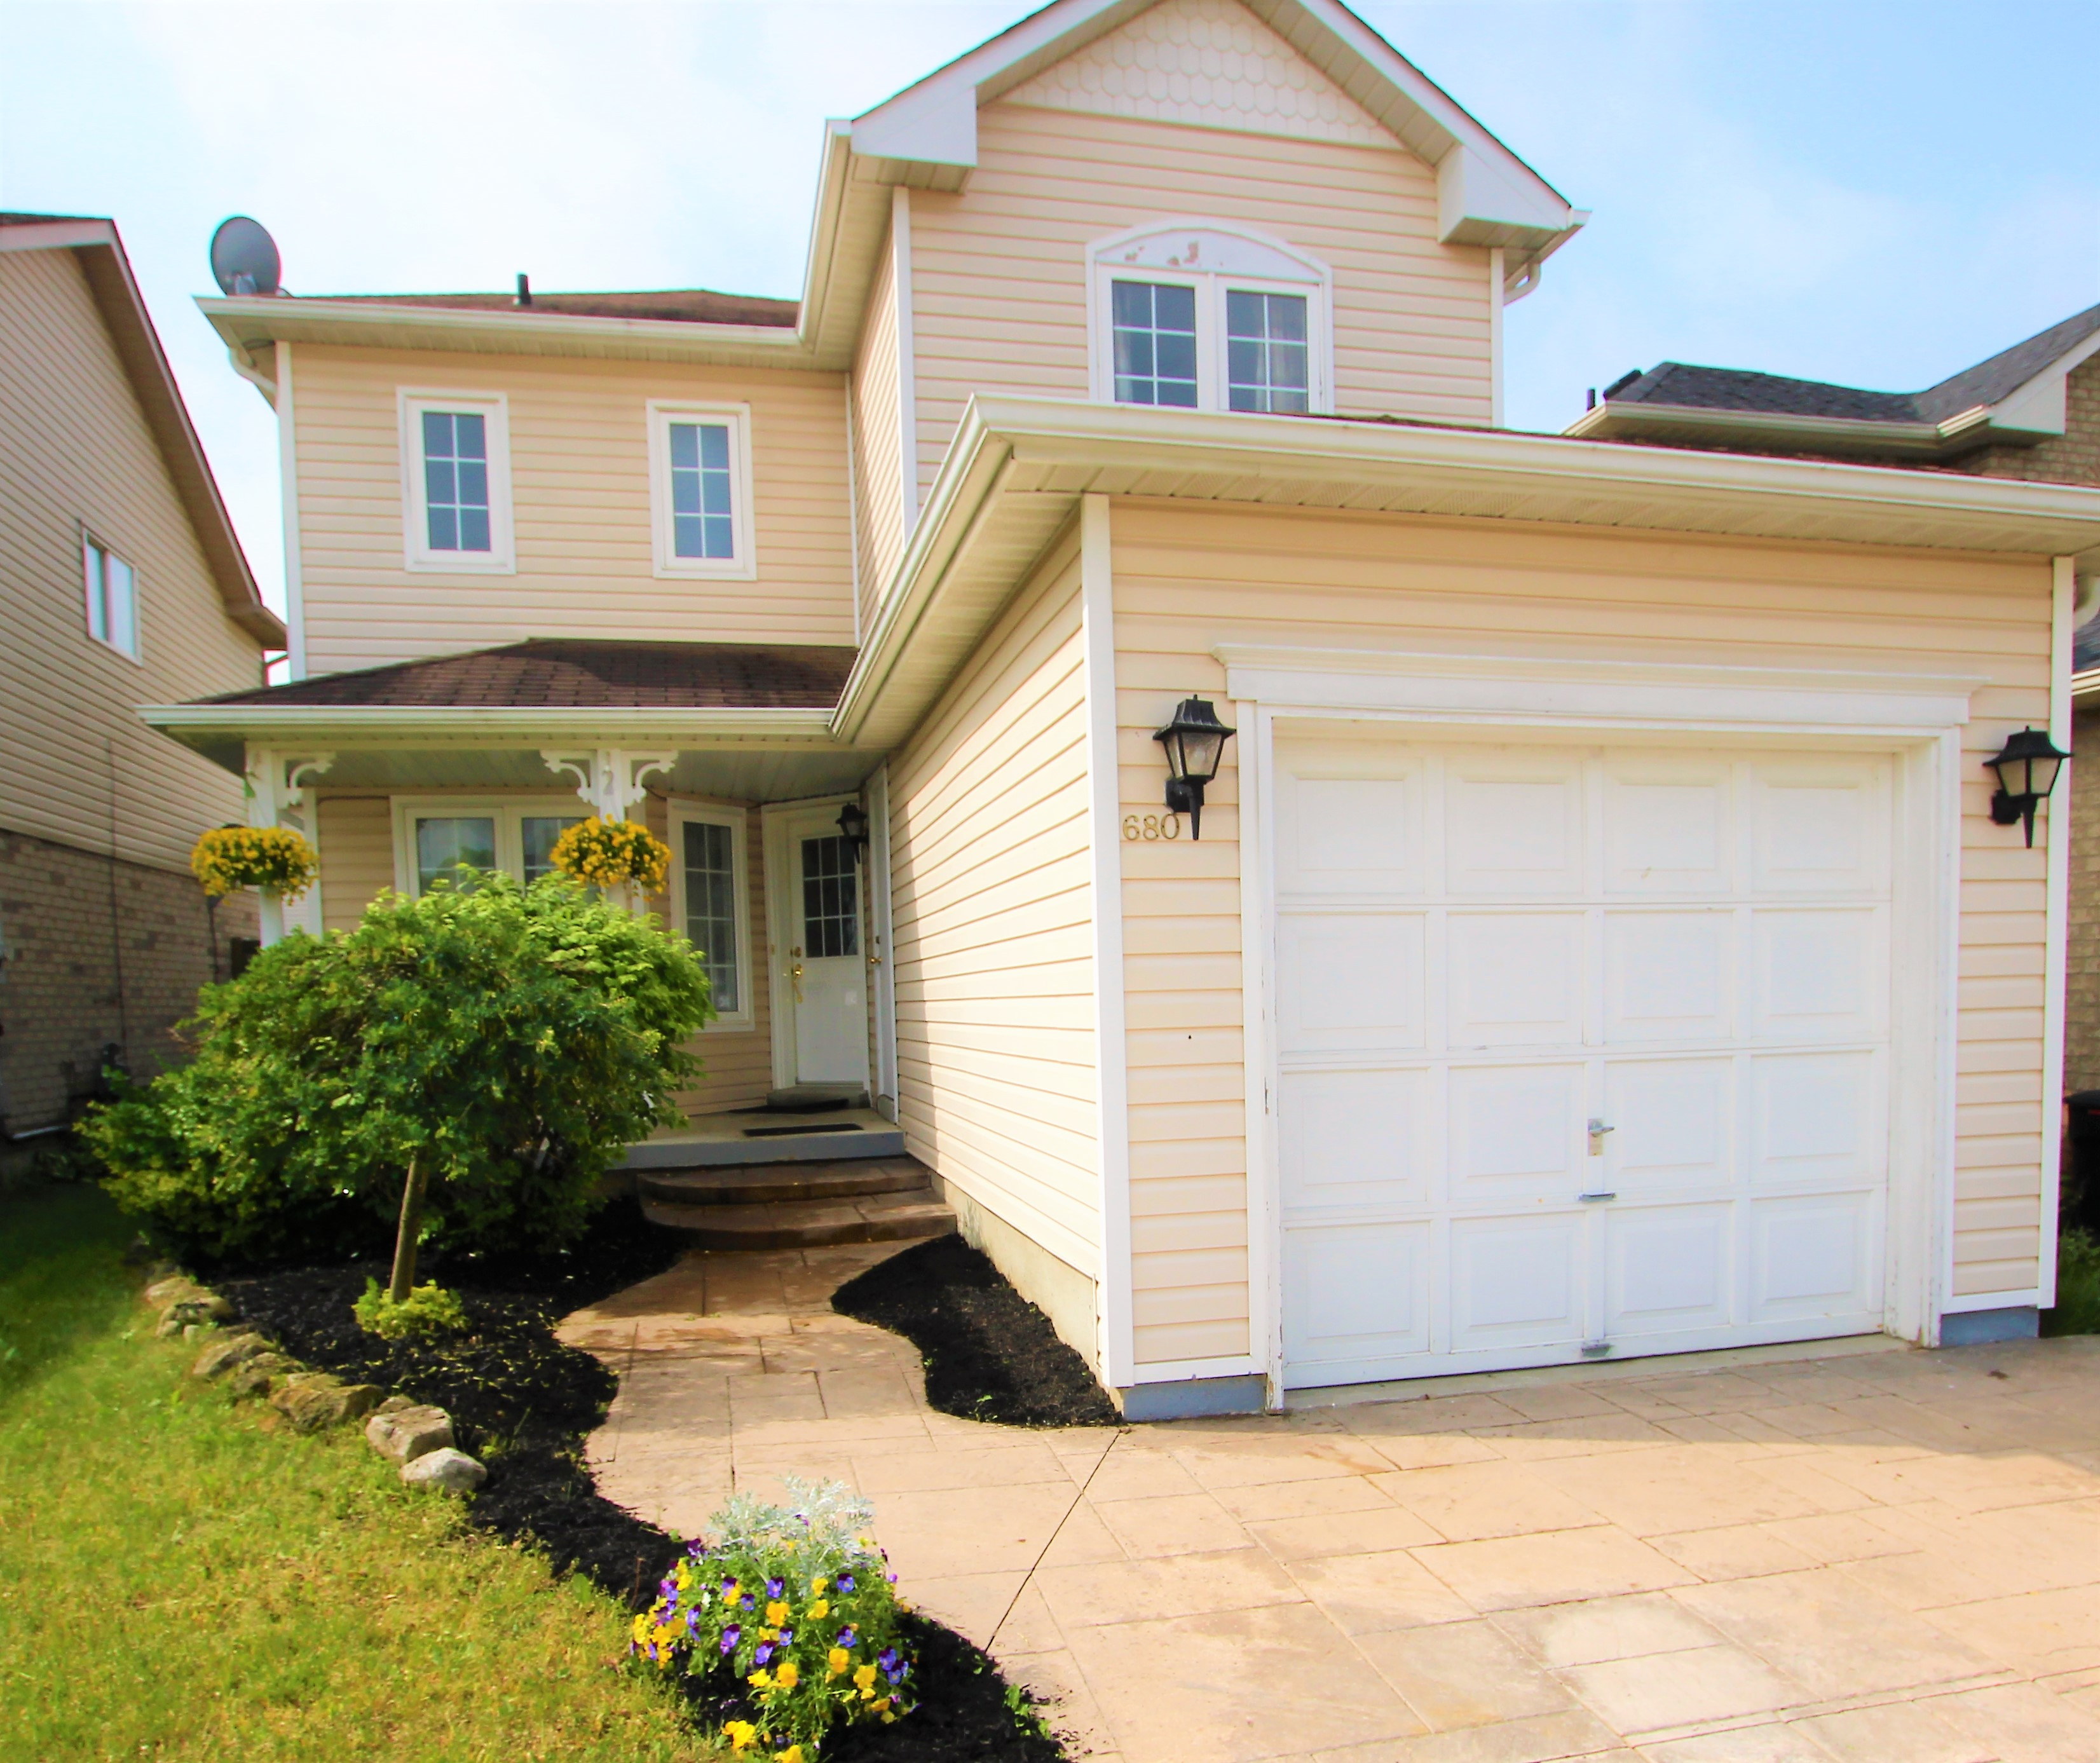 Front view of the house showing the parking gate and main door at 680 Langlaw Drive